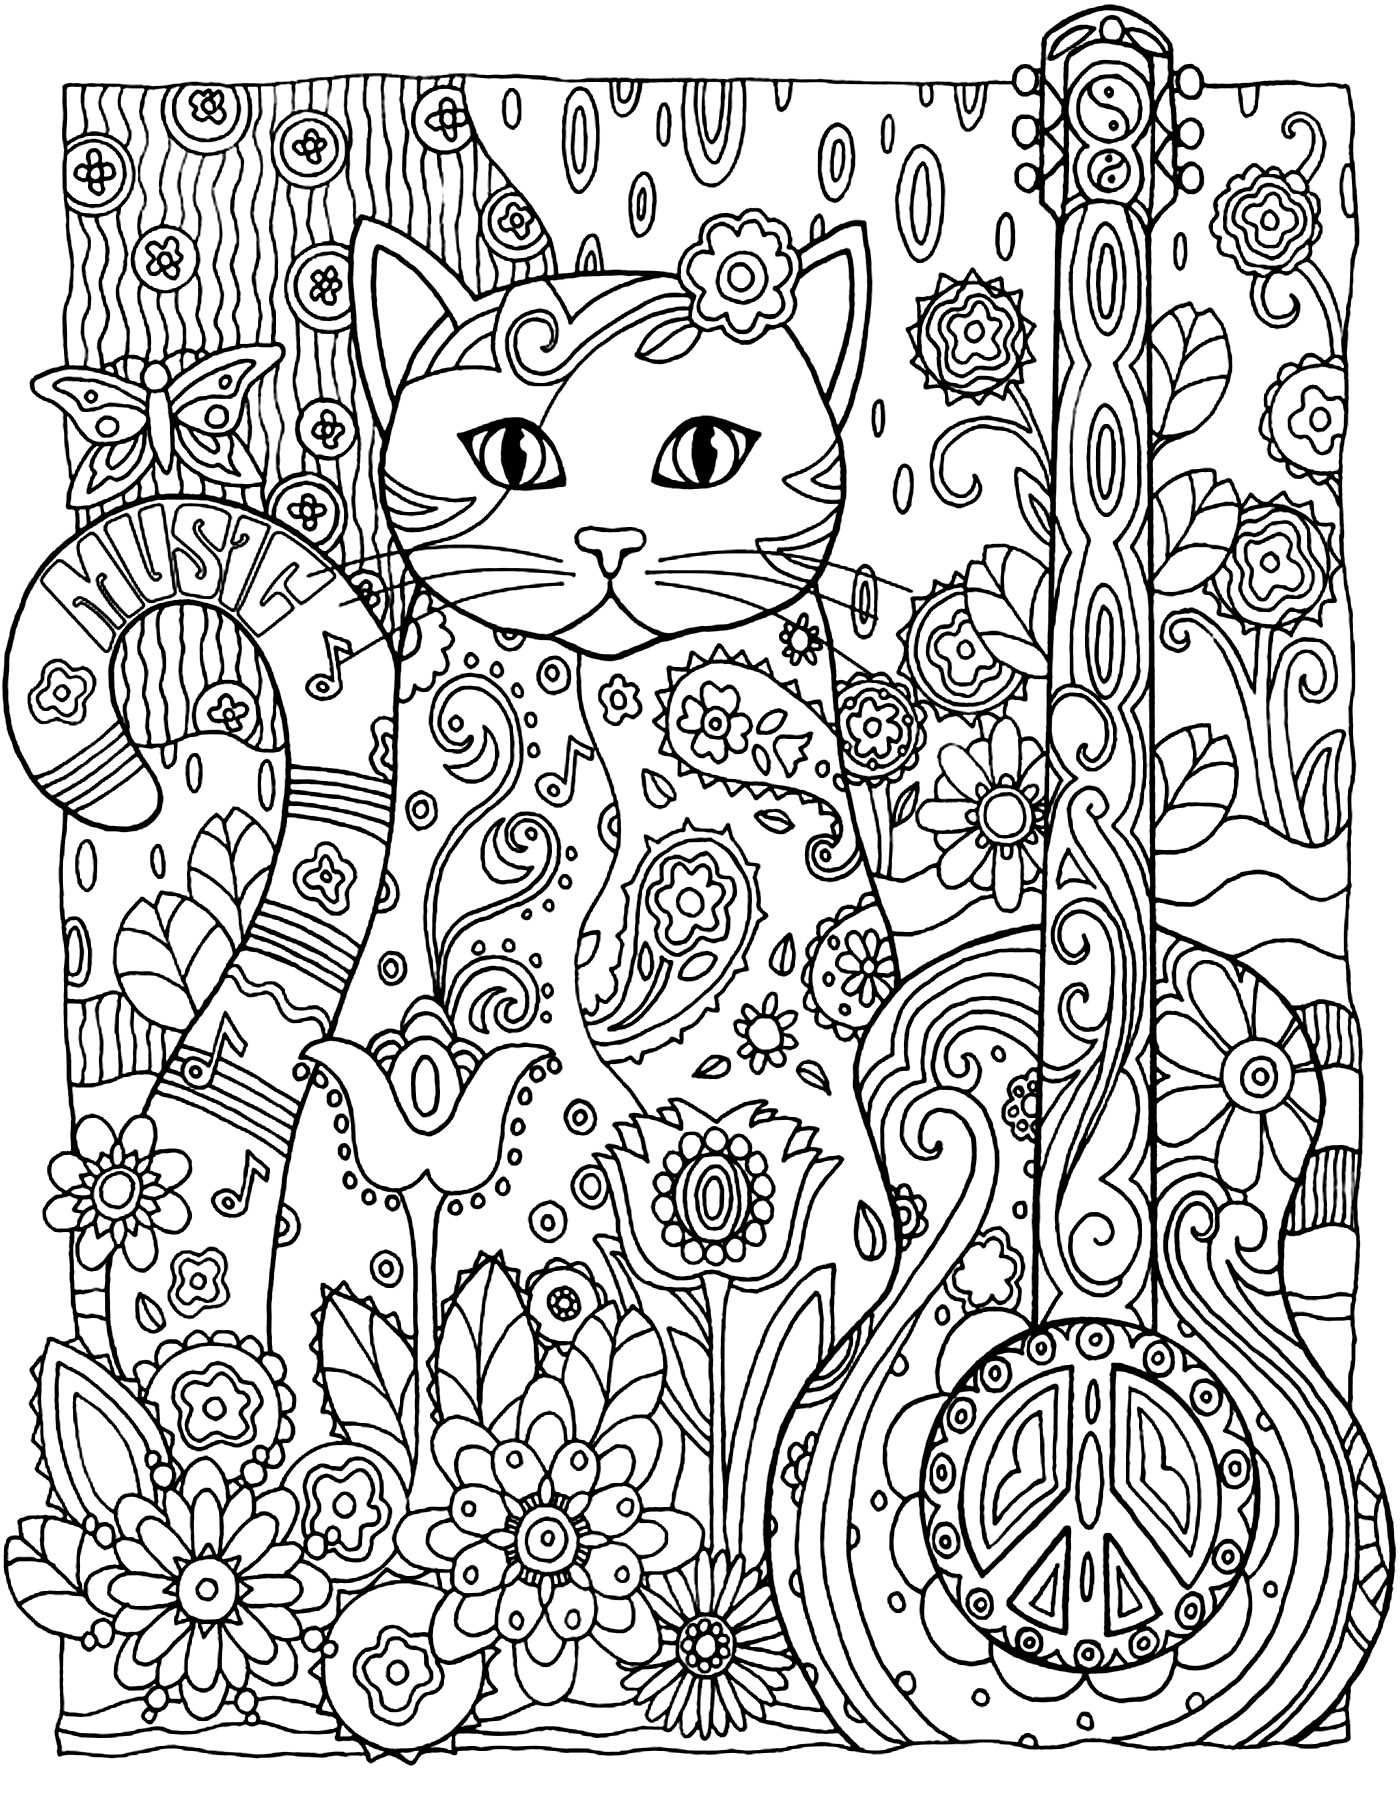 Bible Coloring Pages History - Worksheet & Coloring Pages